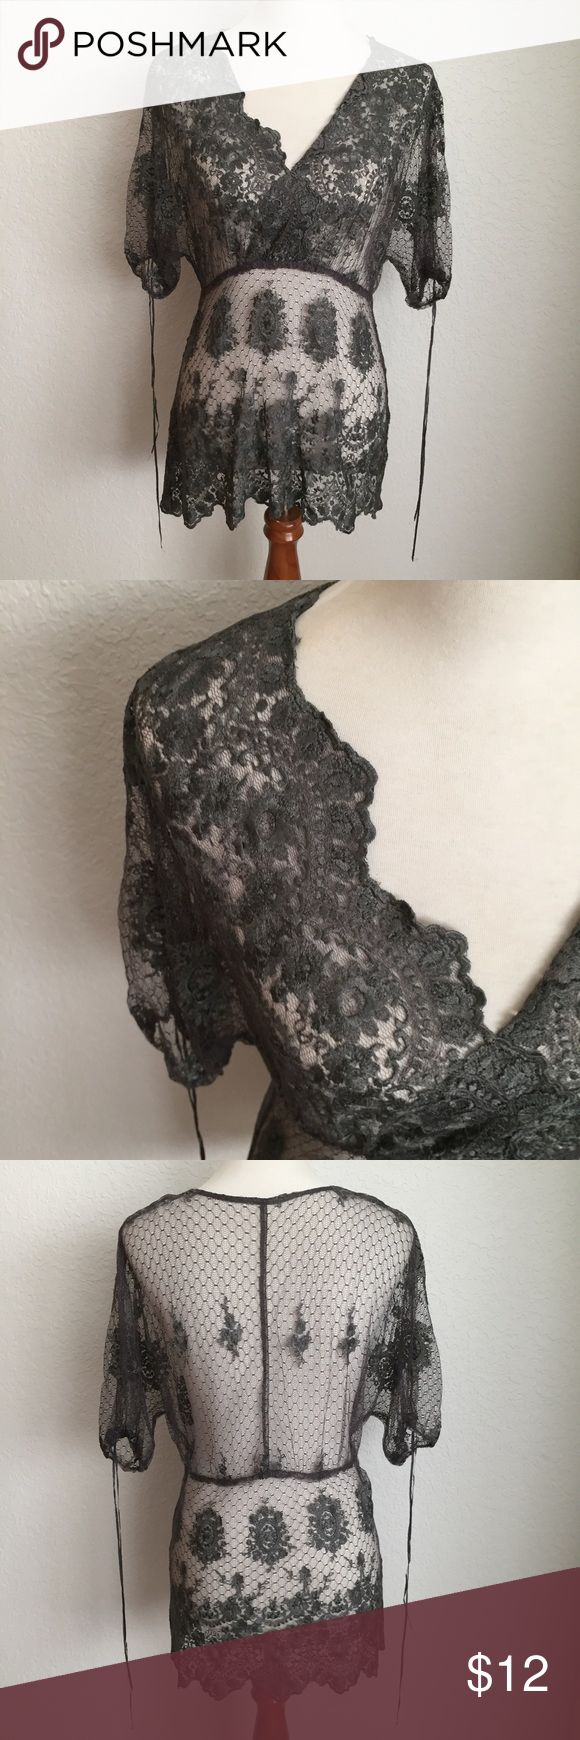 Karen Kane Romantic Lace Top Beautiful grey lace top from Karen Kane. Wear this over any colored cami for a romantic look and feel. Karen Kane Tops Blouses